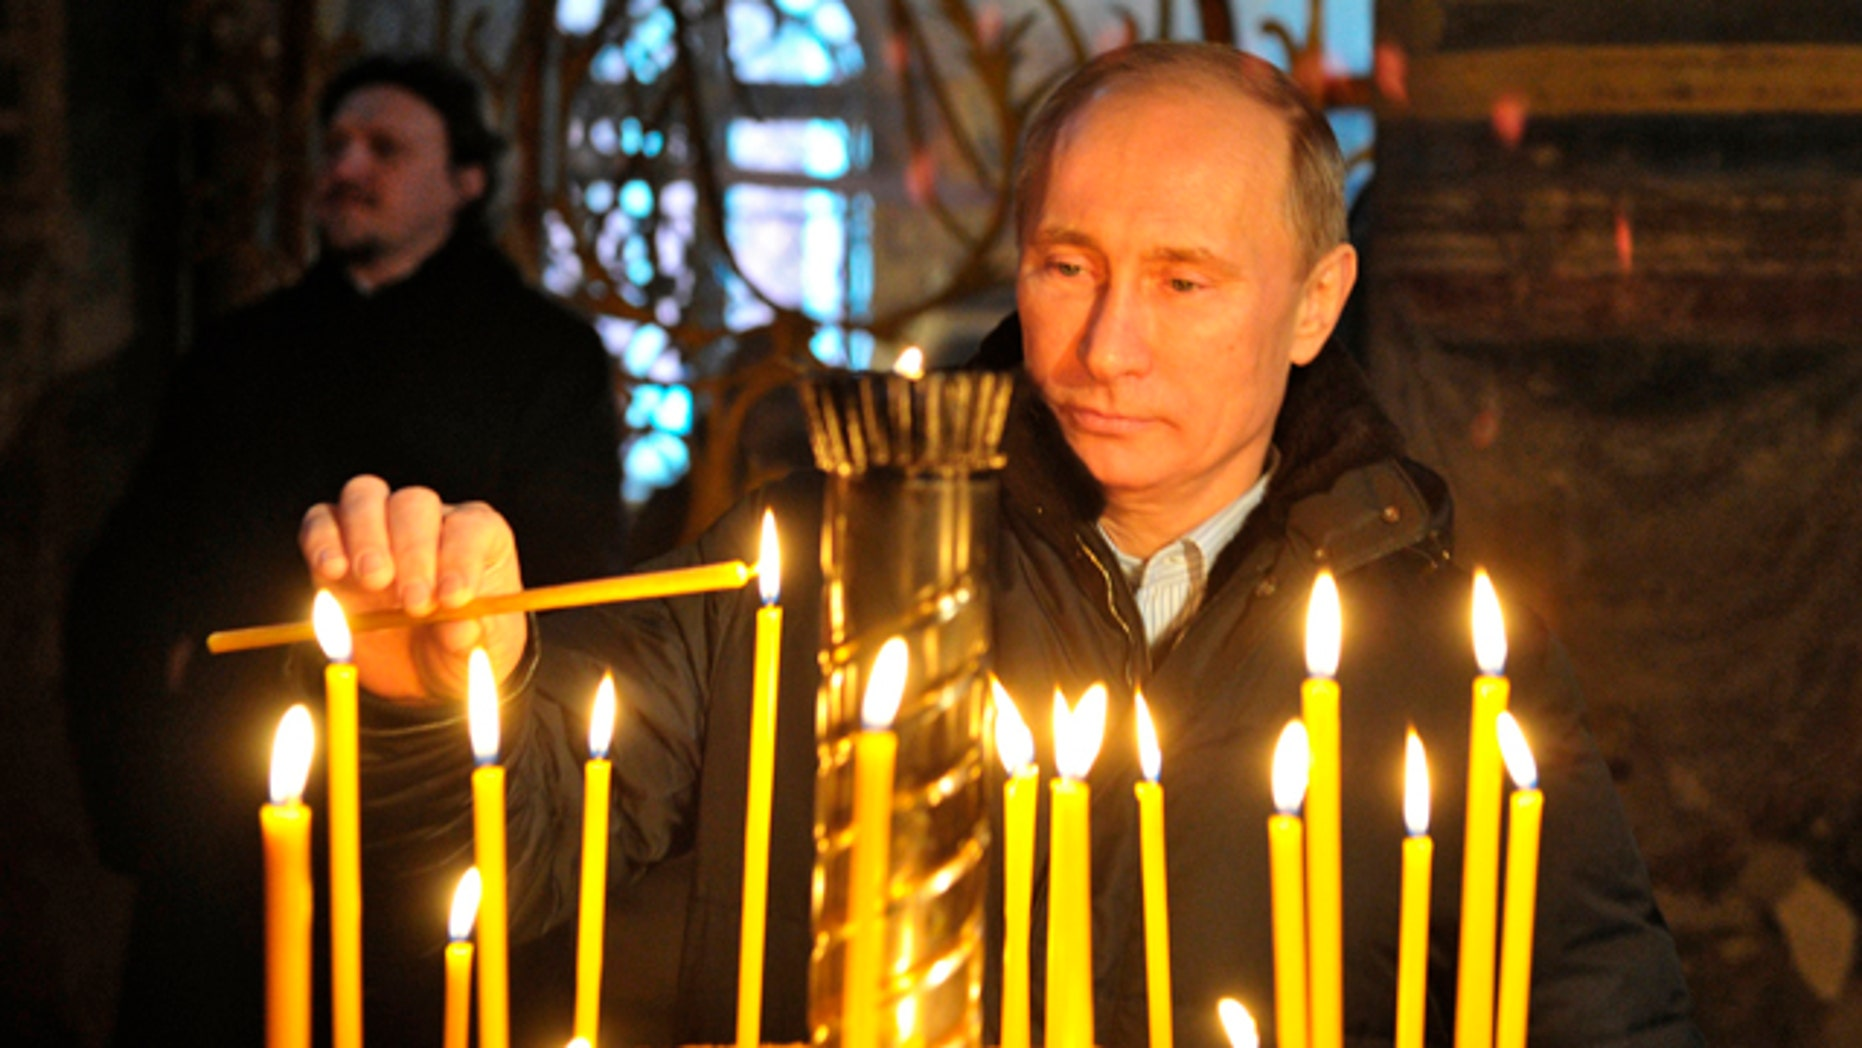 Jan. 30: Russian Prime Minister Vladimir Putin lights a cande as he visits the Tikhvin Assumption Monastery in the town of Tikhvin, about 106 miles east of St. Petersburg.